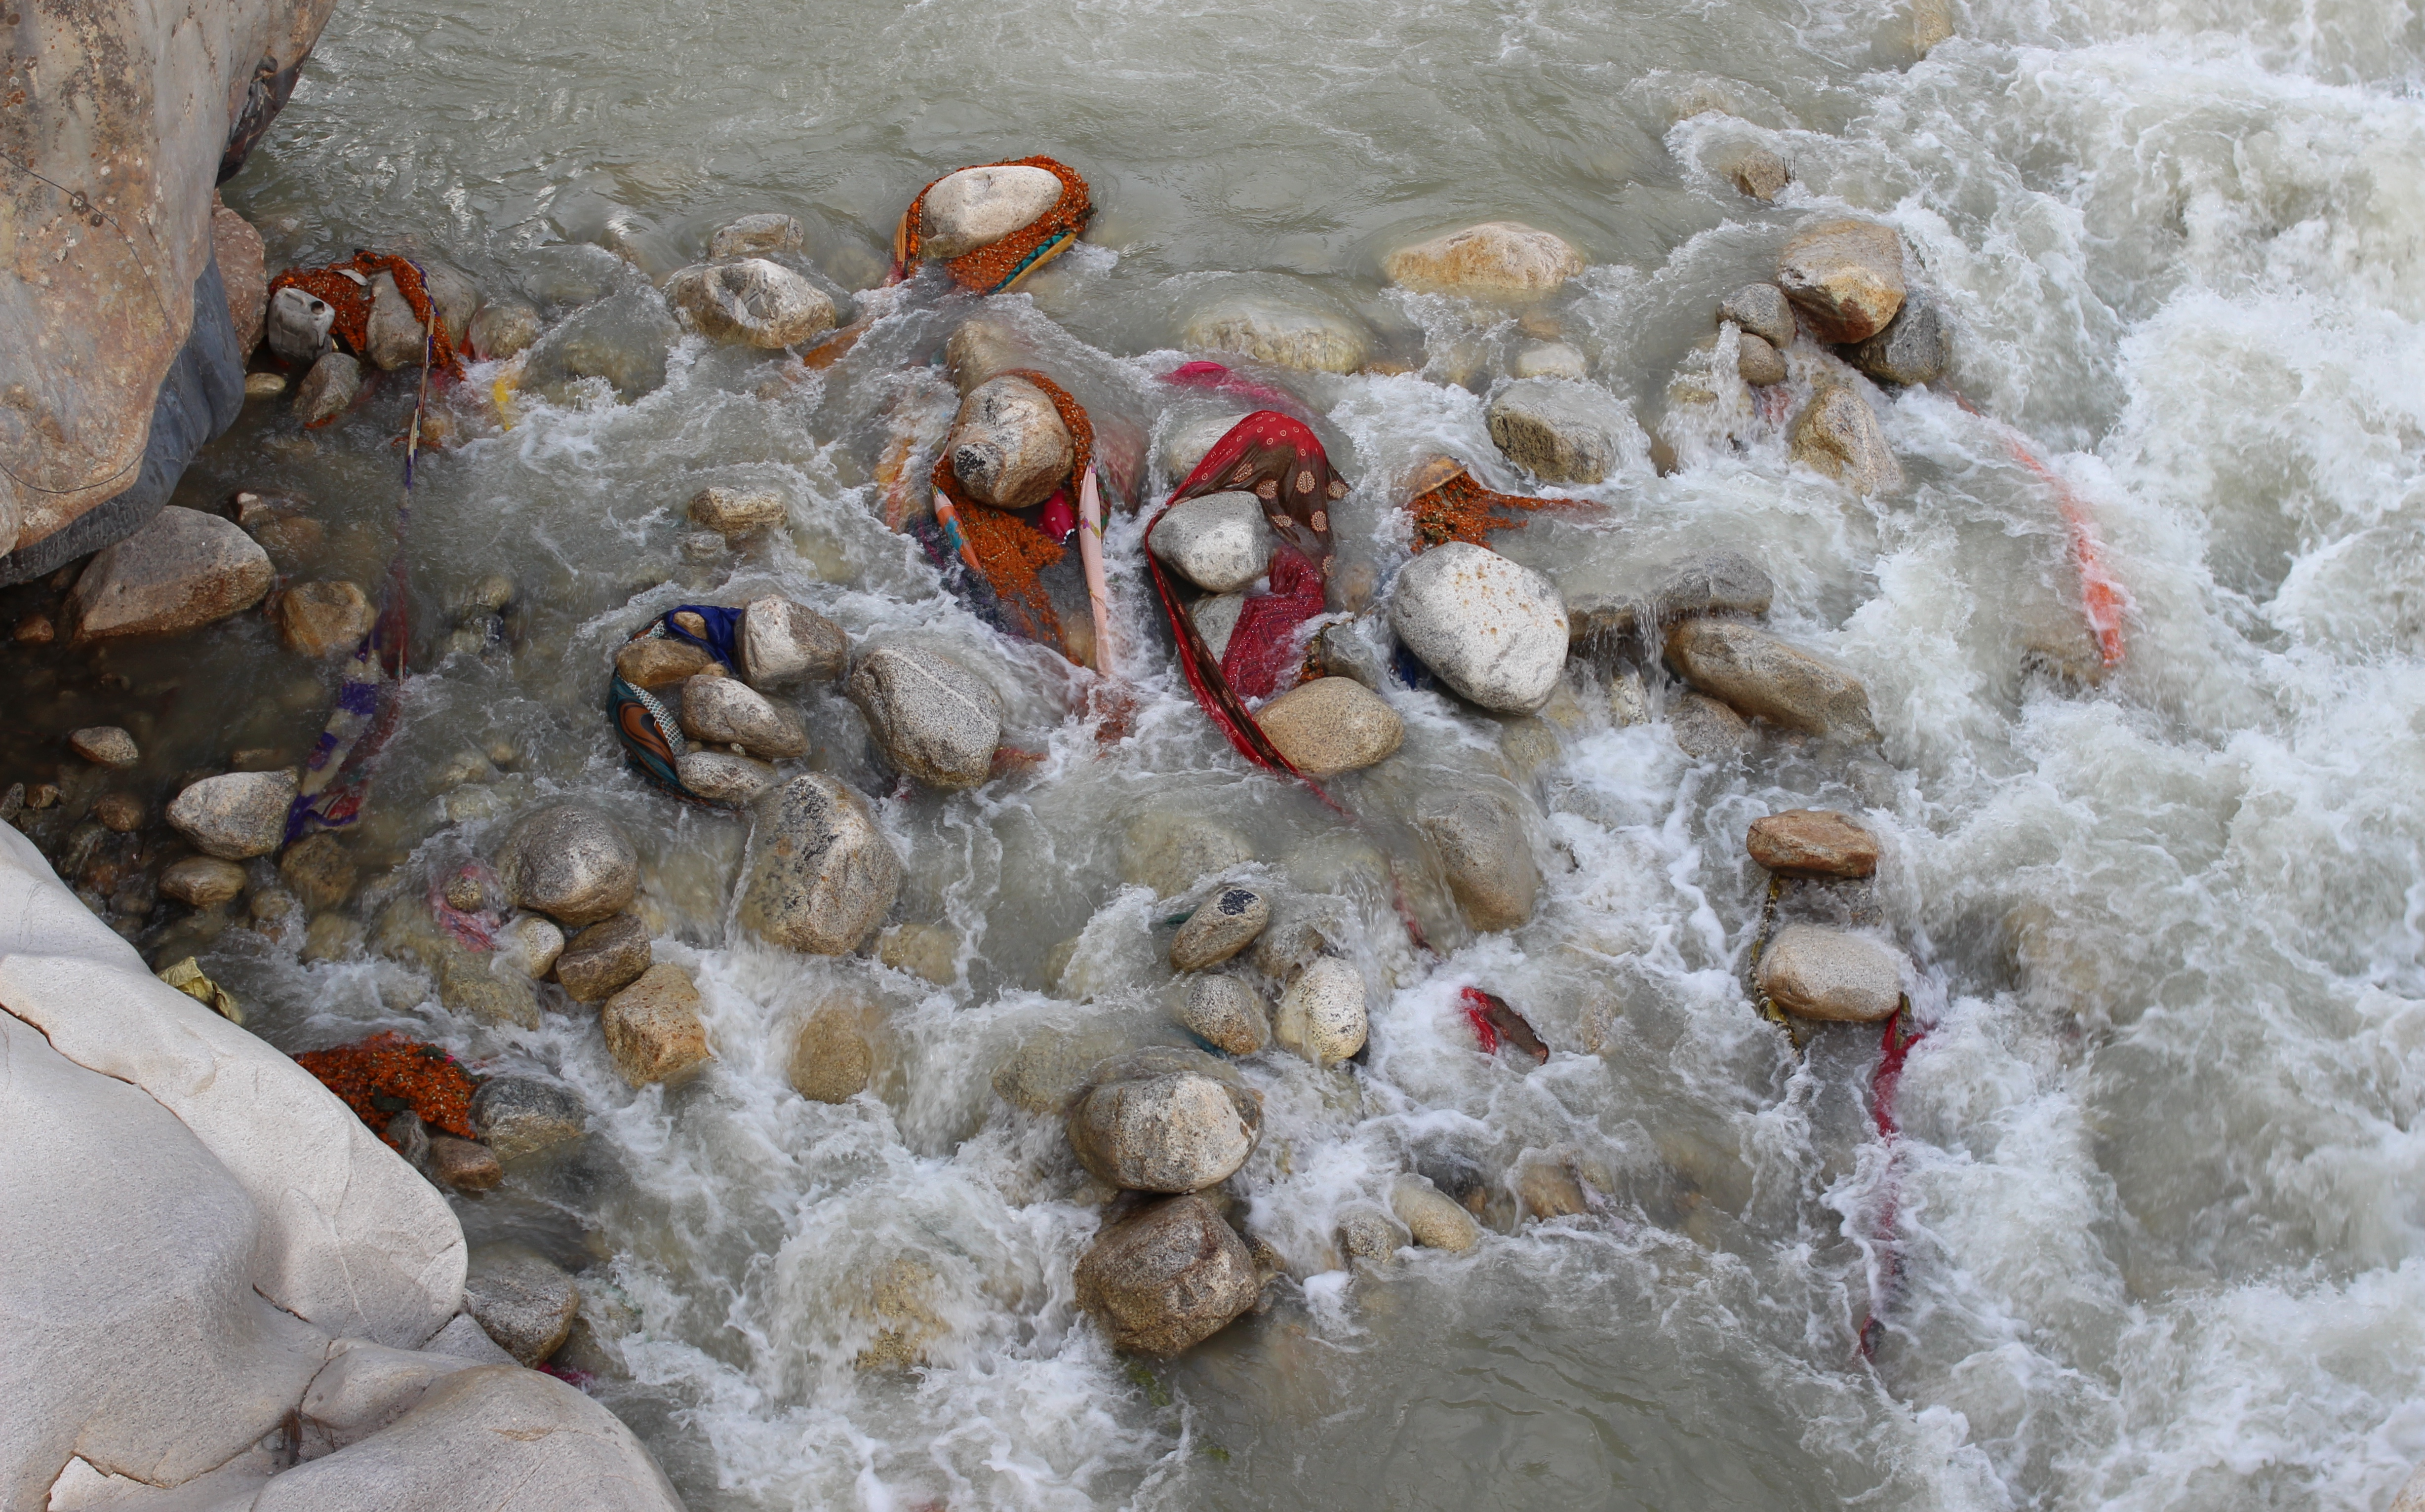 Articles of clothing and saris lost to the river by ritual bathers. Photo: Trixie Pacis